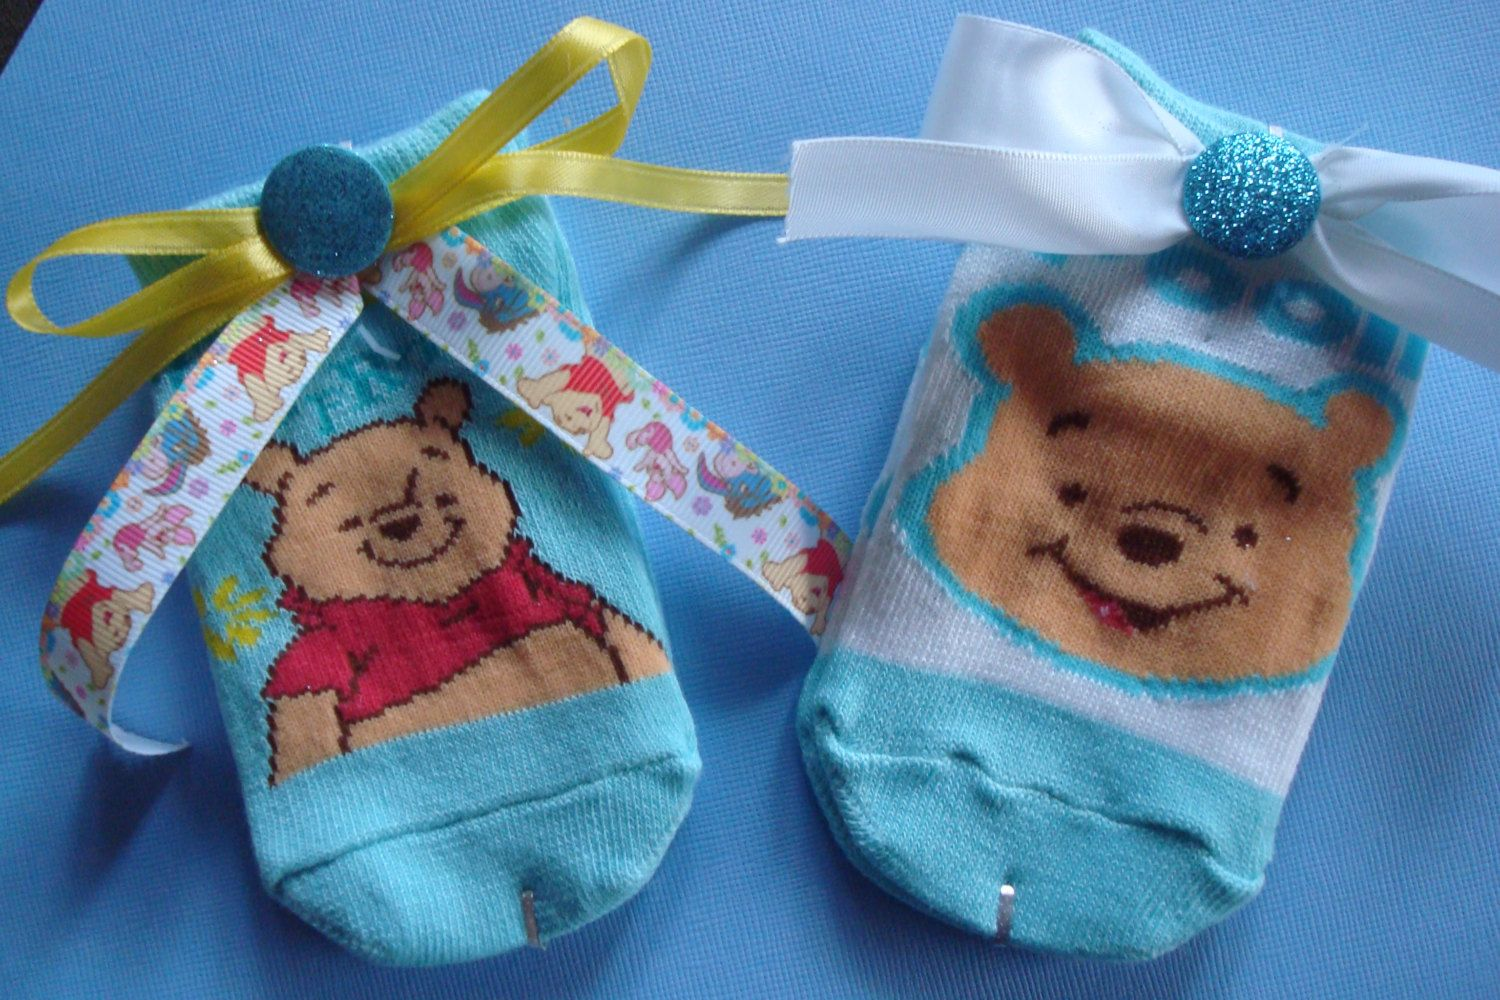 be4649b55641 Winnie The Pooh Themed Baby Shower  New Mom to Be Corsage  Grandma to be  Corsage  Unisex Baby Shower Gift  Unique Shower Decorations Pooh by ...